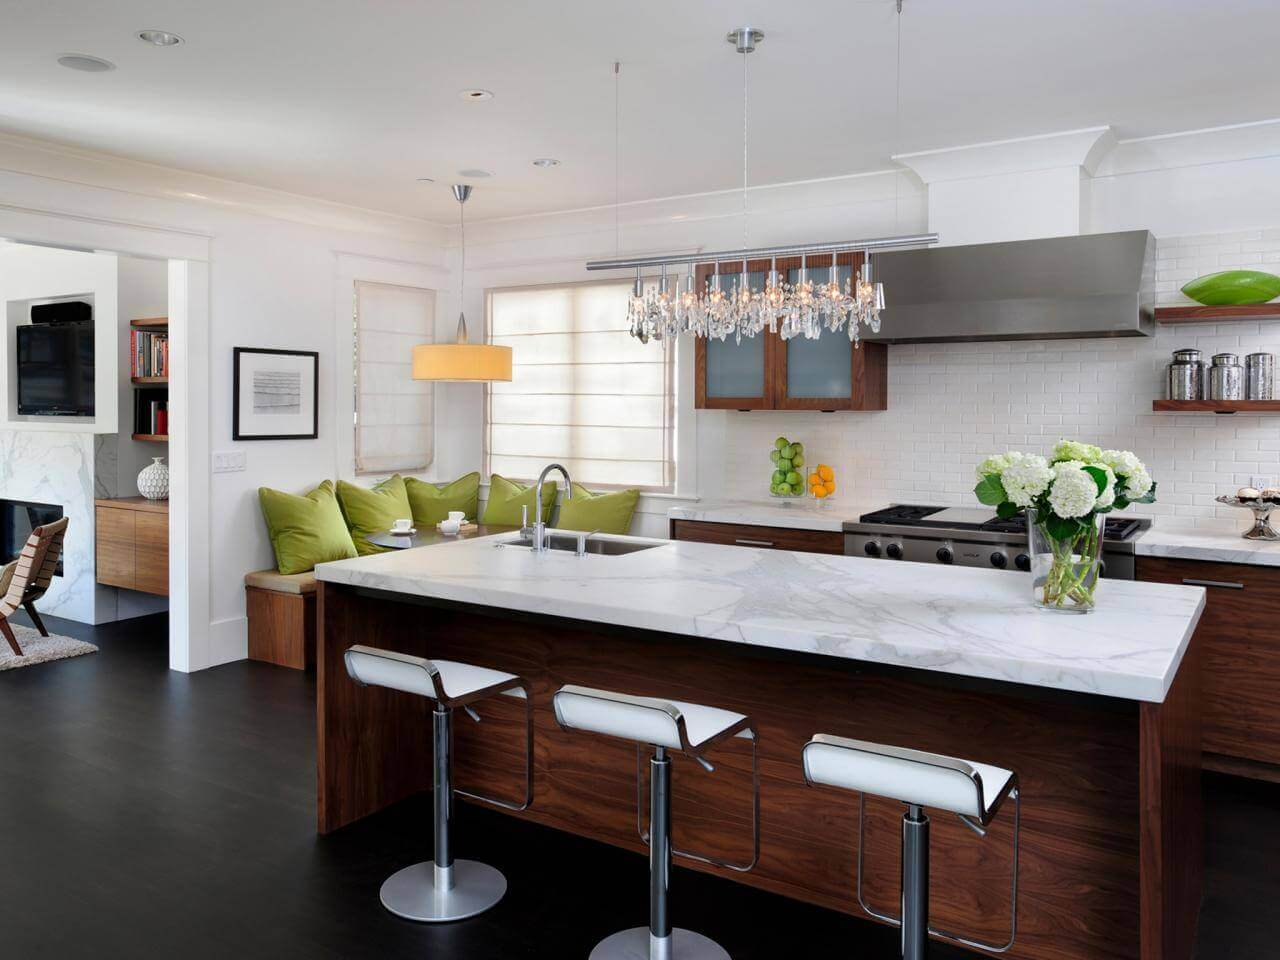 In contemporary kitchen decorating ideas, the importance of open pantry shelving can't be overemphasised. It helps keep ingredients in perfect view and easy to reach. The dark wood island and stainless steel barstools create a casual spot to dine